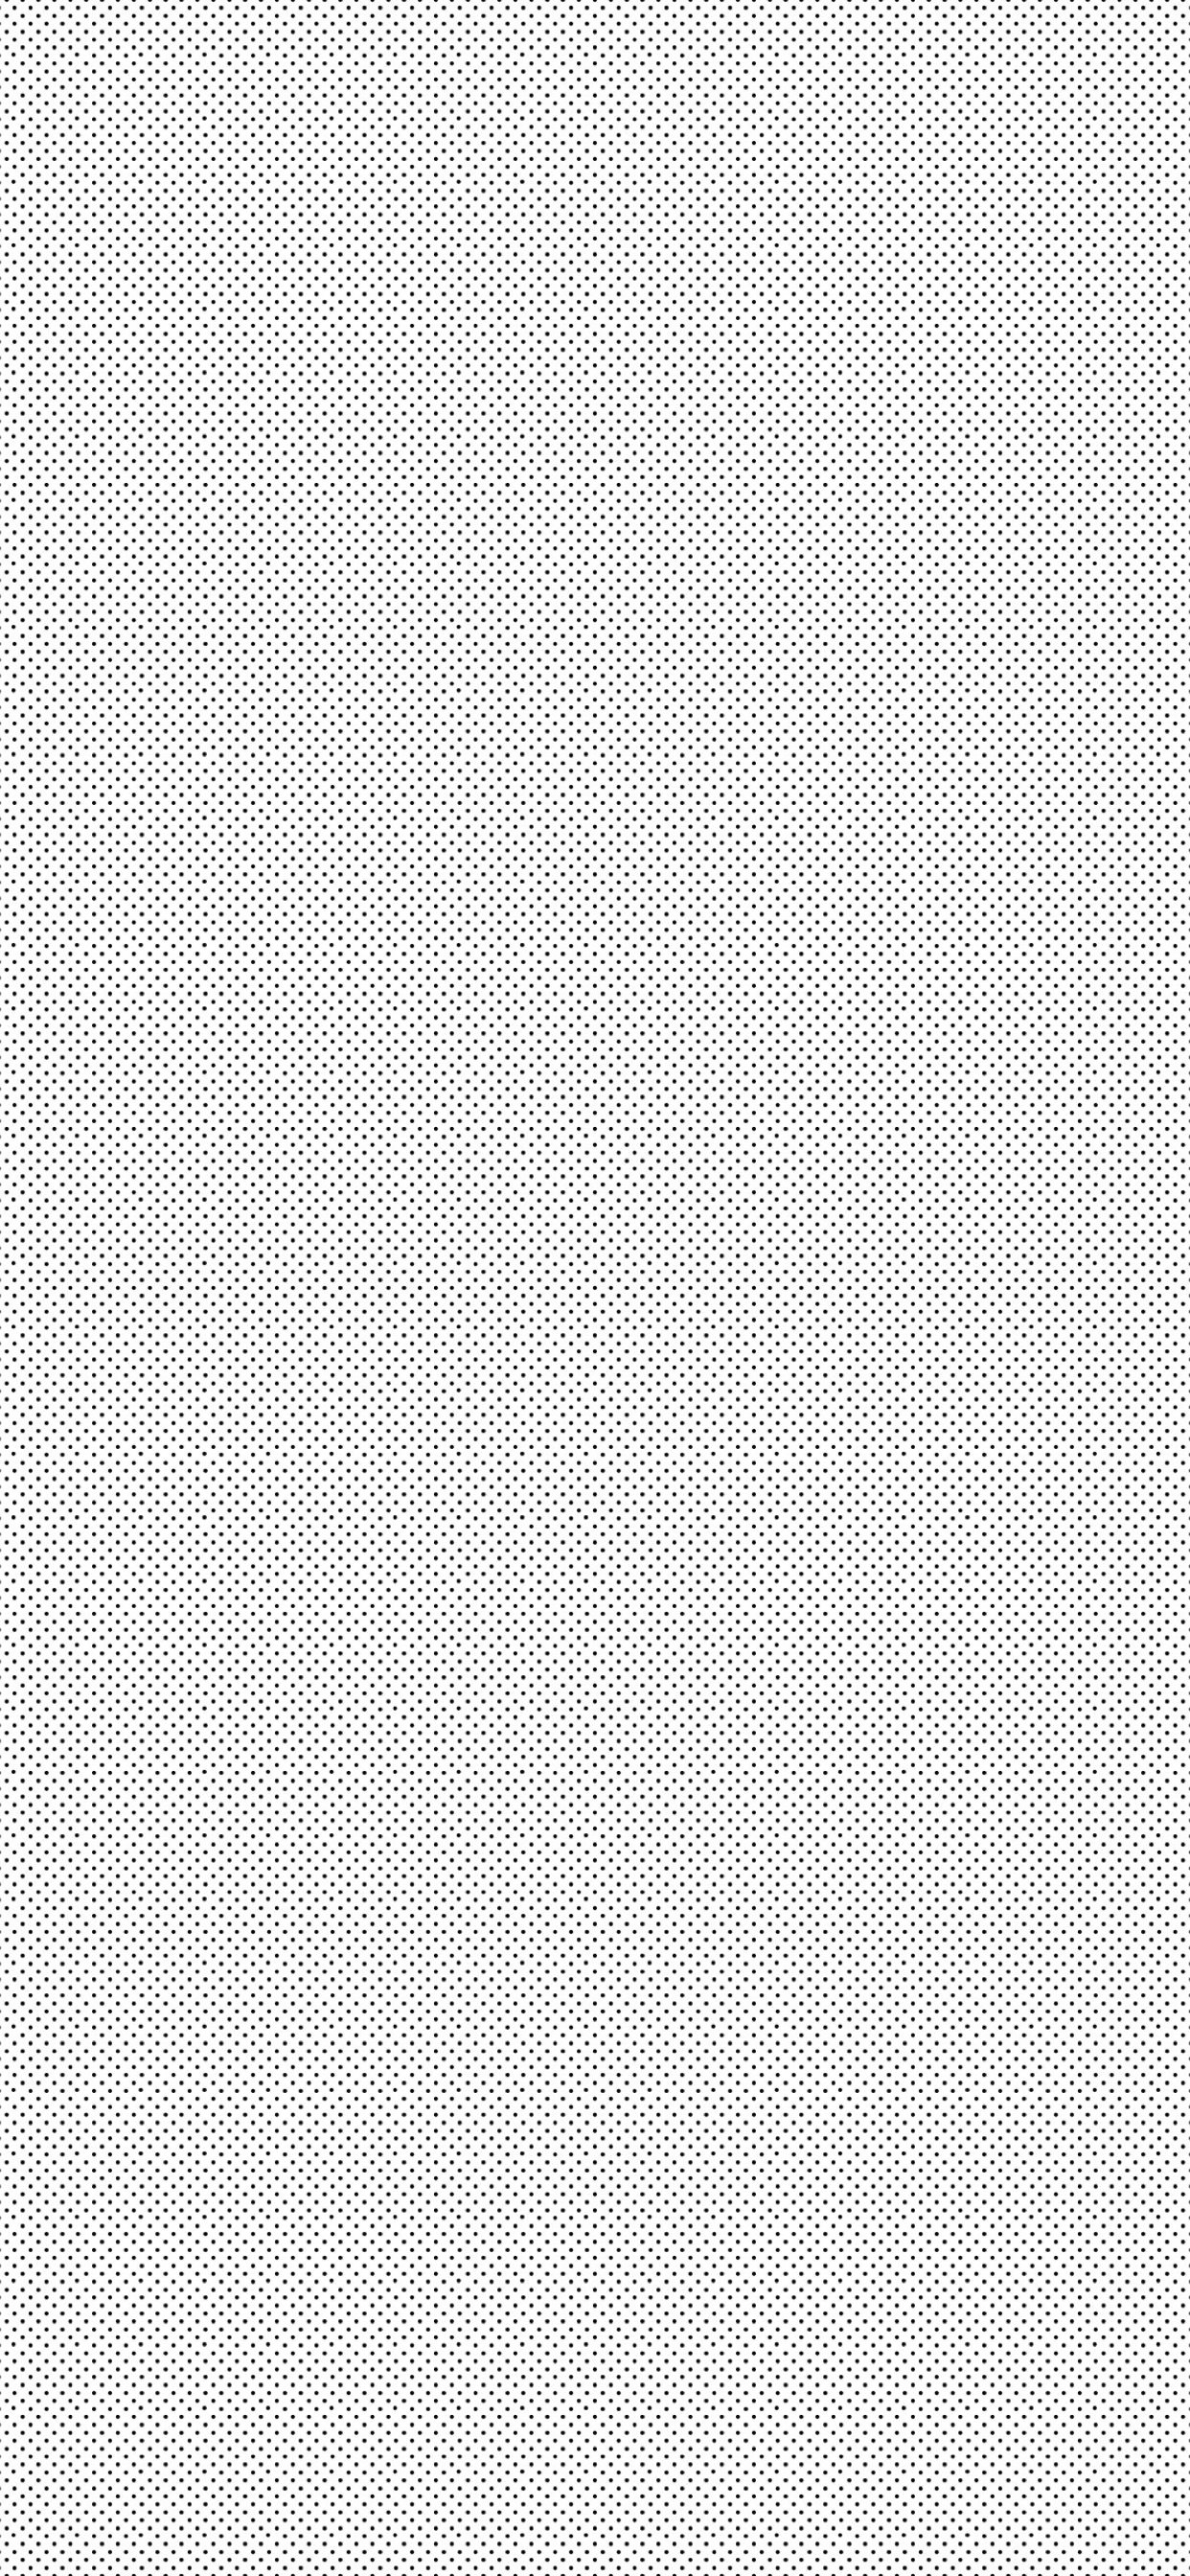 Pattern Dot Black And White Wallpaper Sc Iphone Xs Max